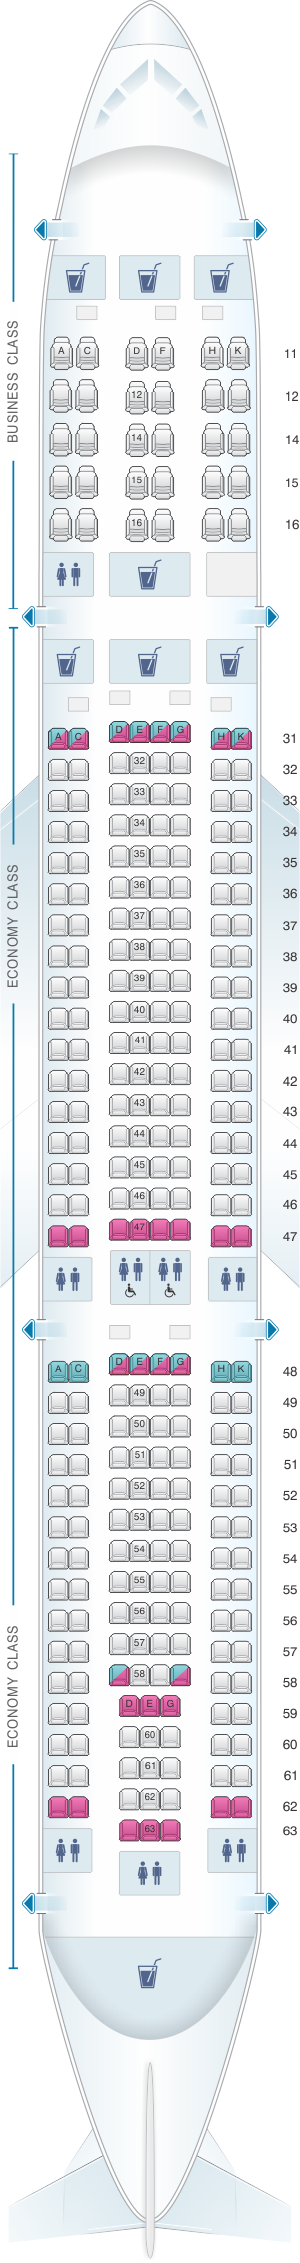 Seat map for Singapore Airlines Airbus A330 300